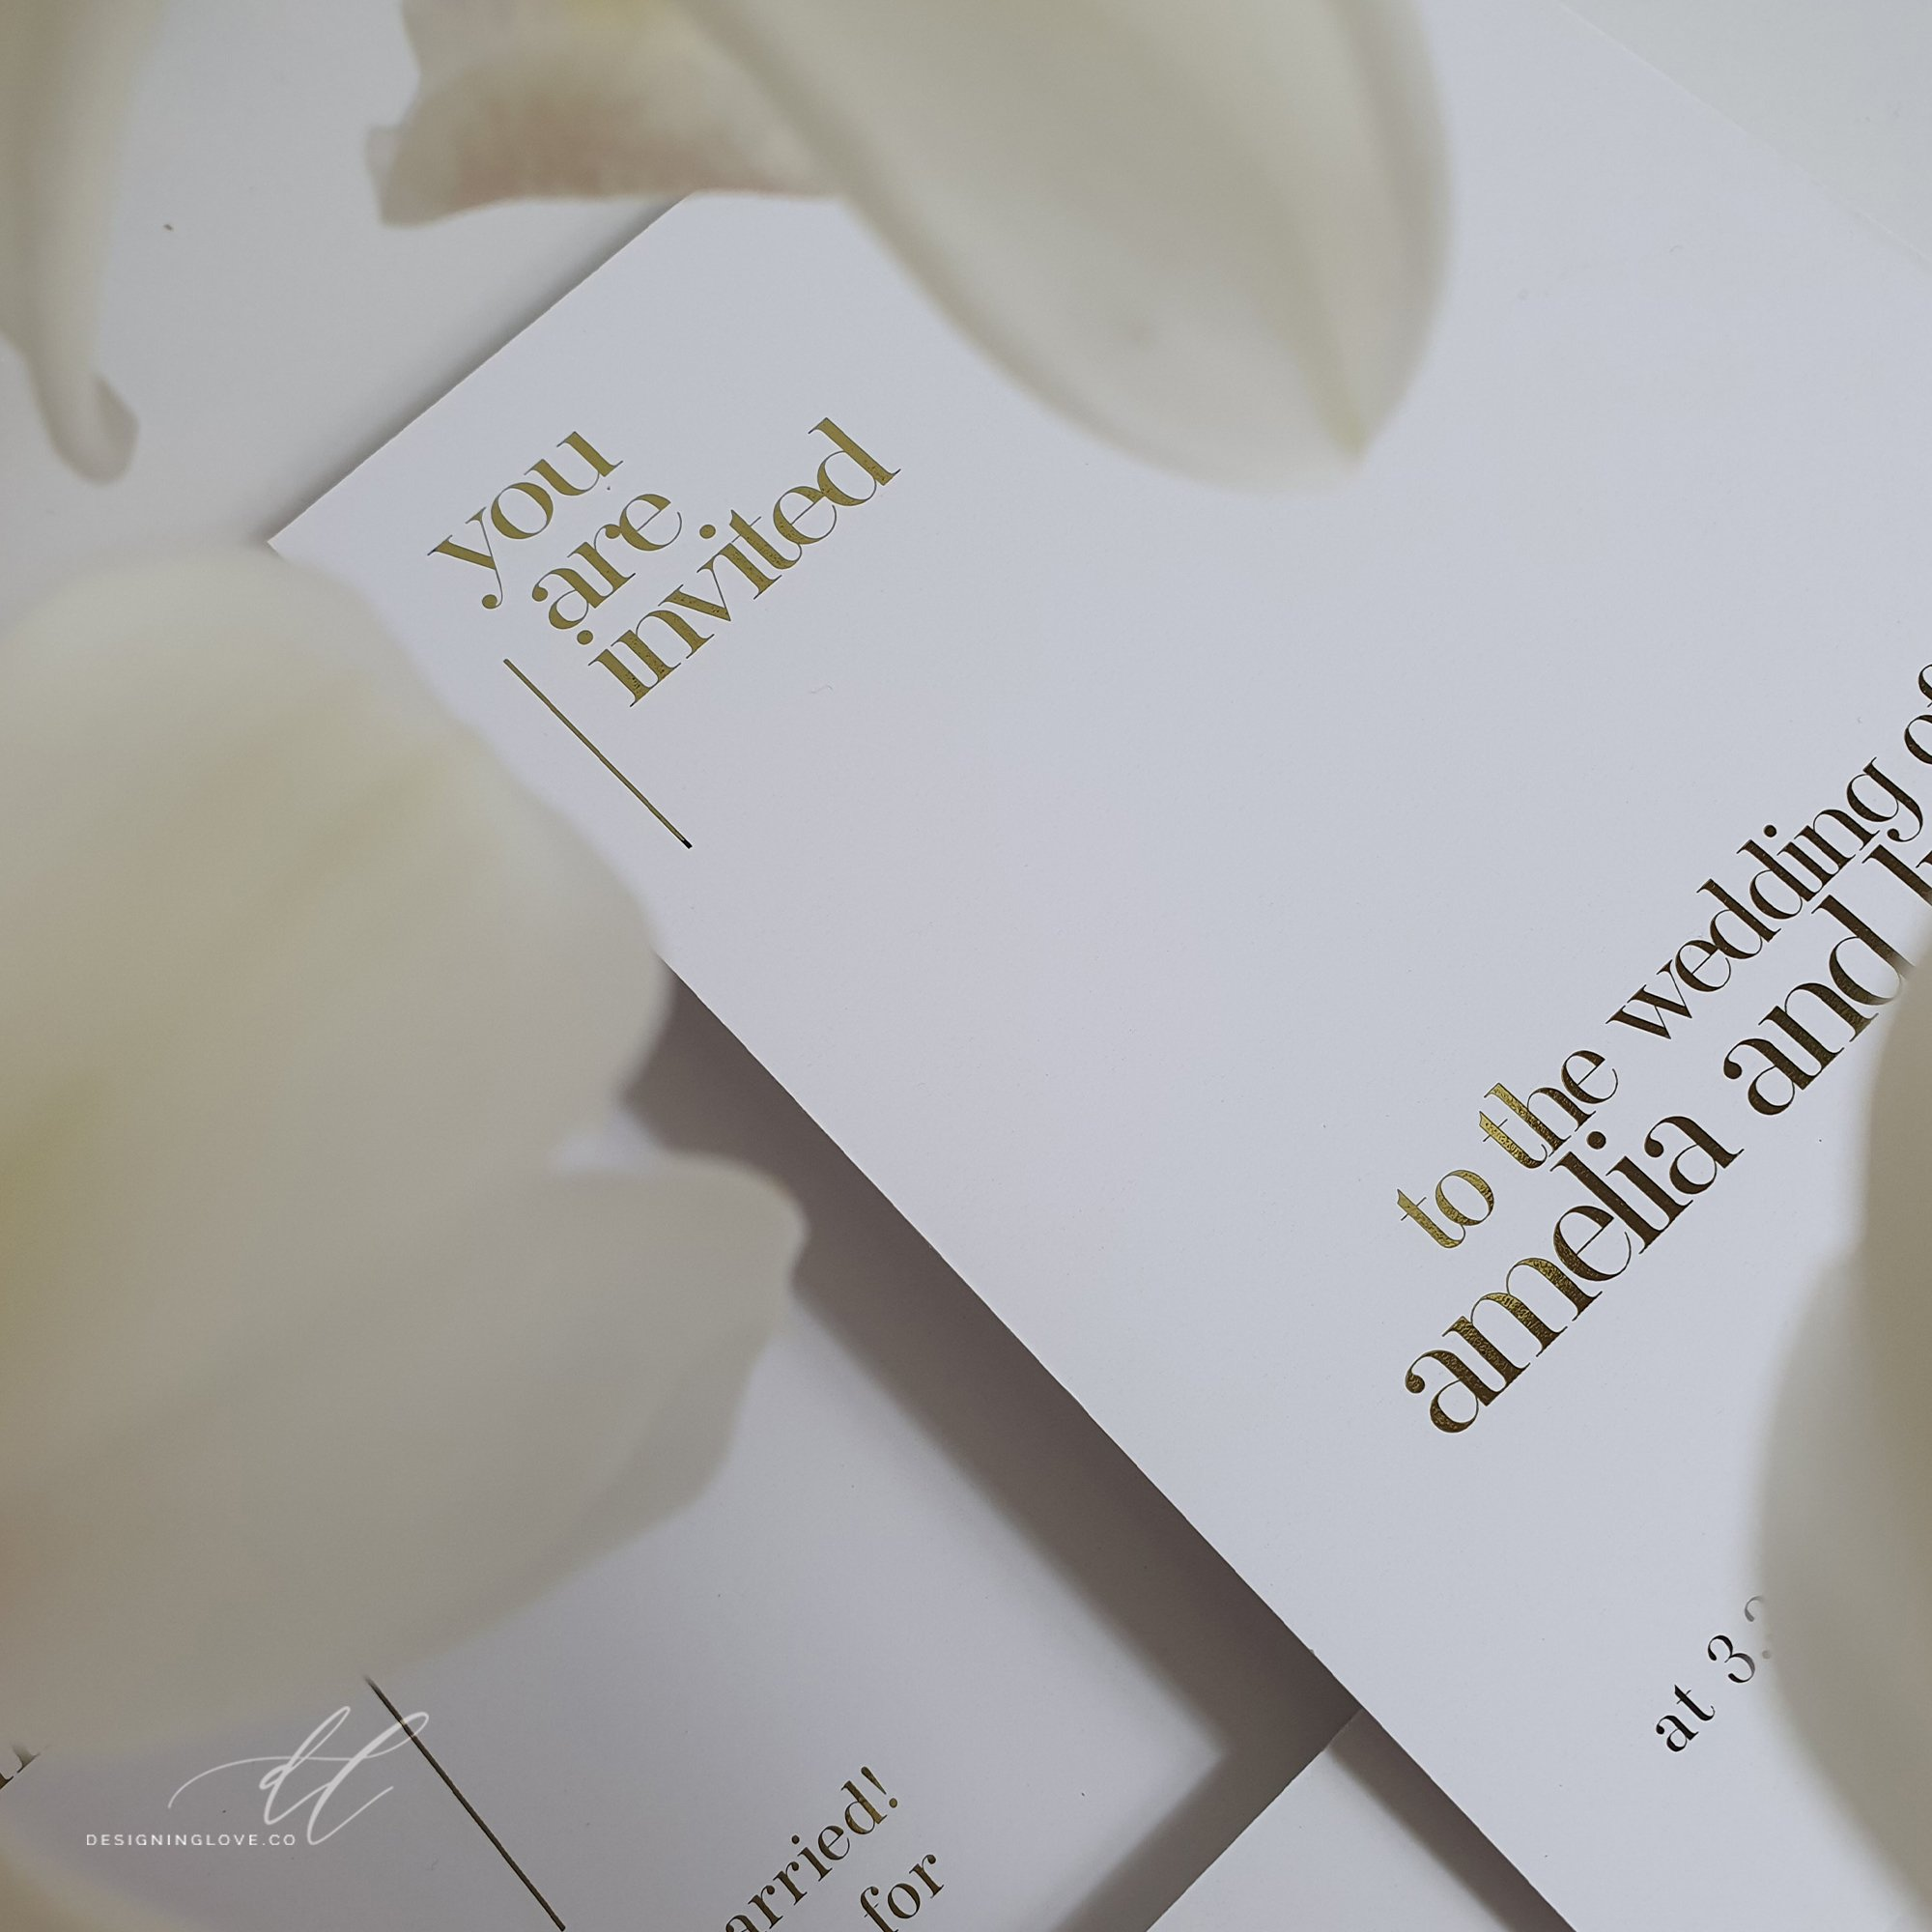 clean and simple wedding invitation with a top left aligned header you are invited. The couples names are in bold serif type in lower third of the card and time date and location details are in smaller type in the footer of the card in the foreground out of focus are white orchids